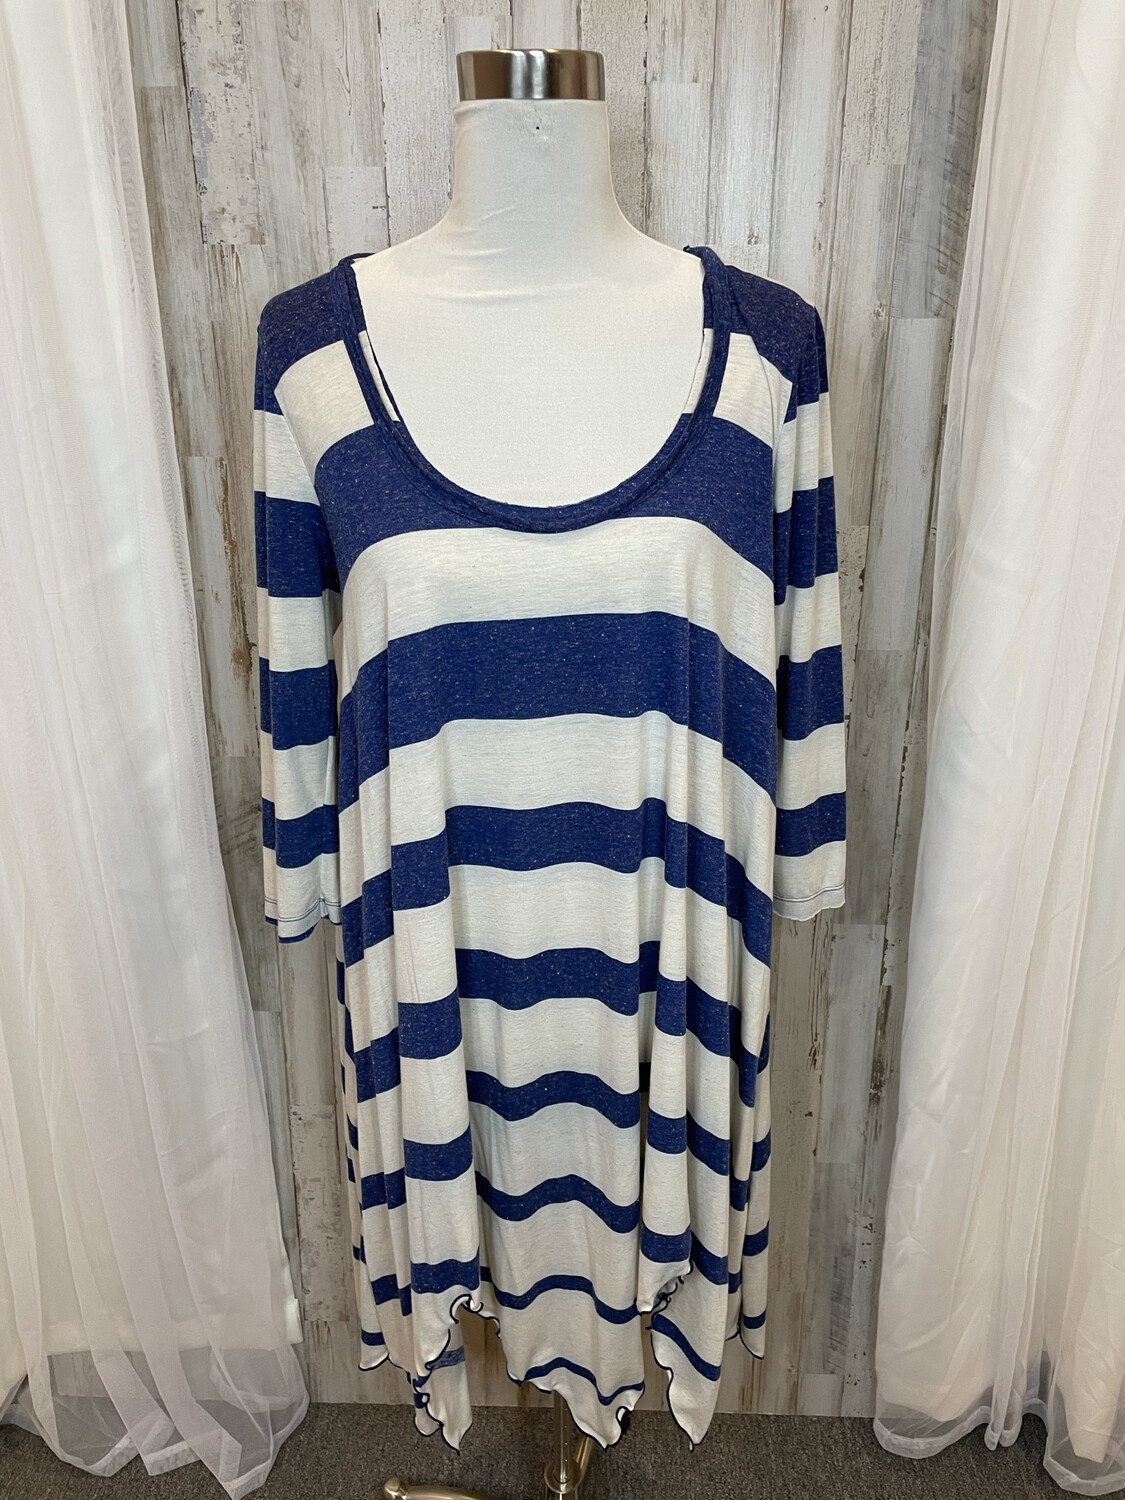 FP Beach Blue & White Striped Dress - M